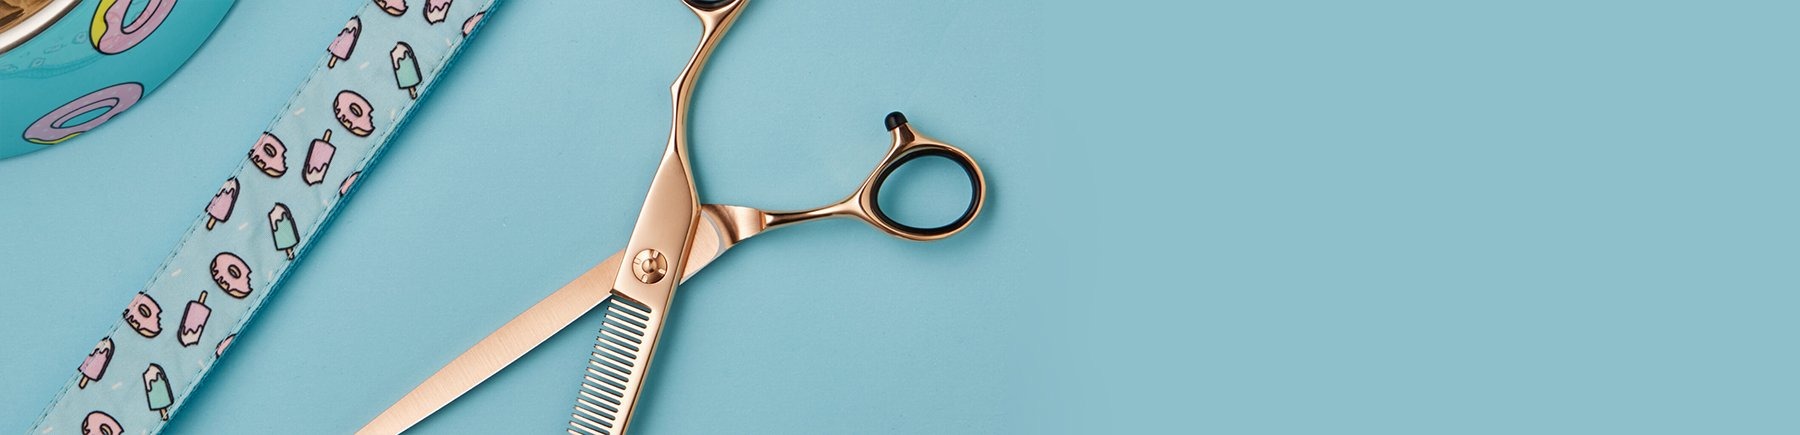 Thinning and Texturising Scissors